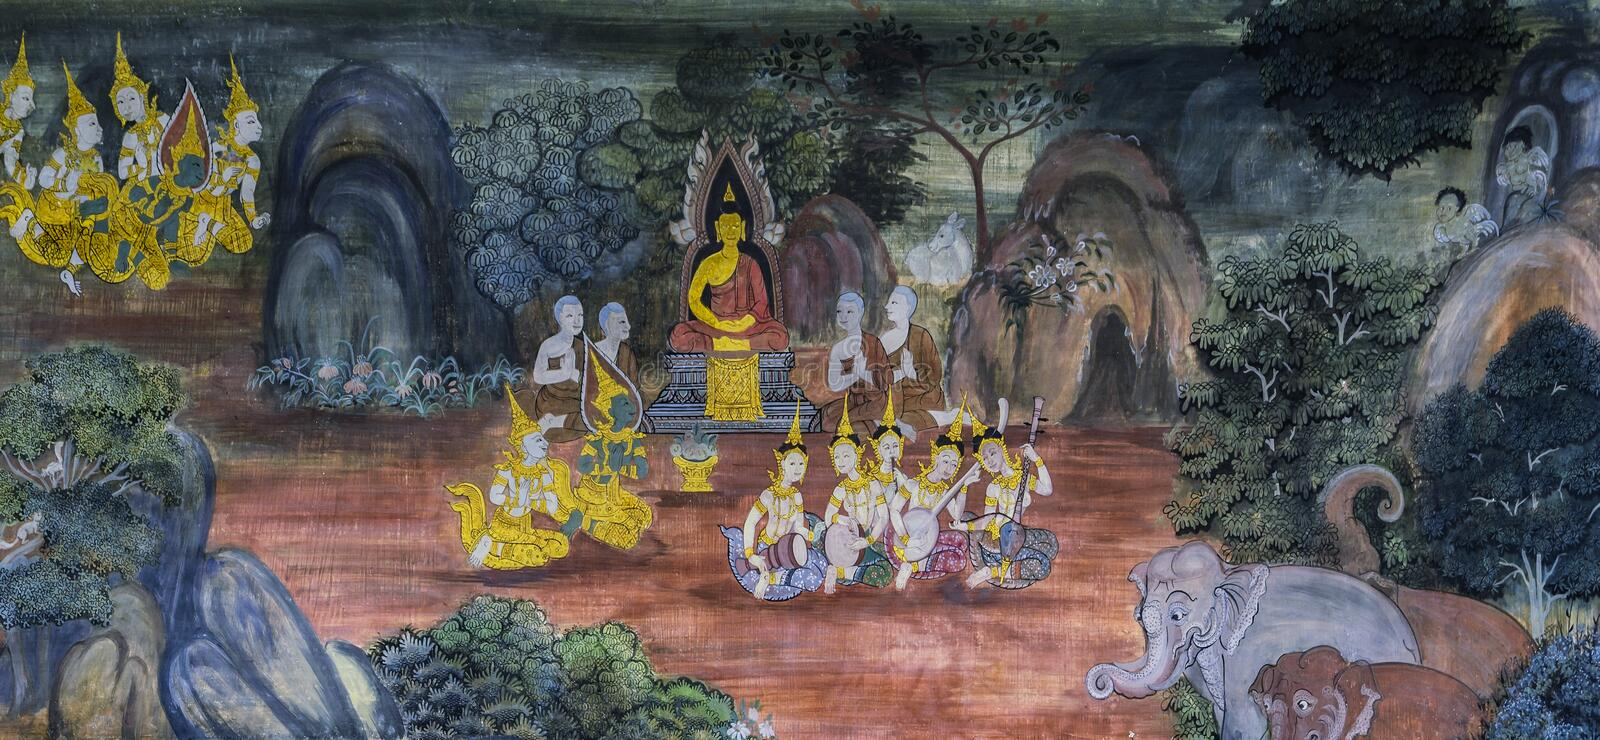 Ancient Thai Buddisht mural painting on temple wall royalty free stock image